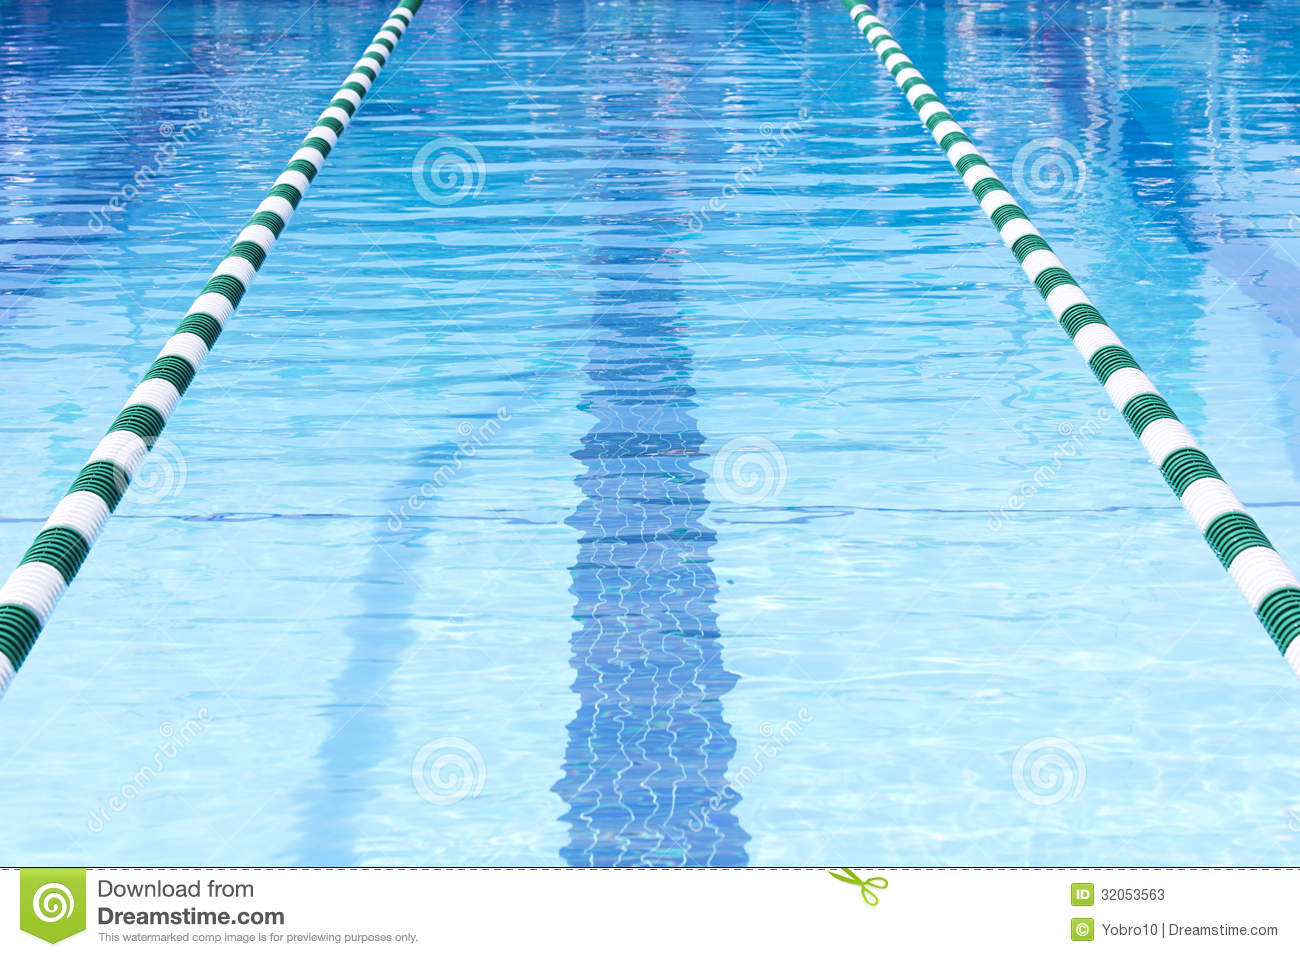 swimming pool swim lanes - Olympic Swimming Pool Underwater